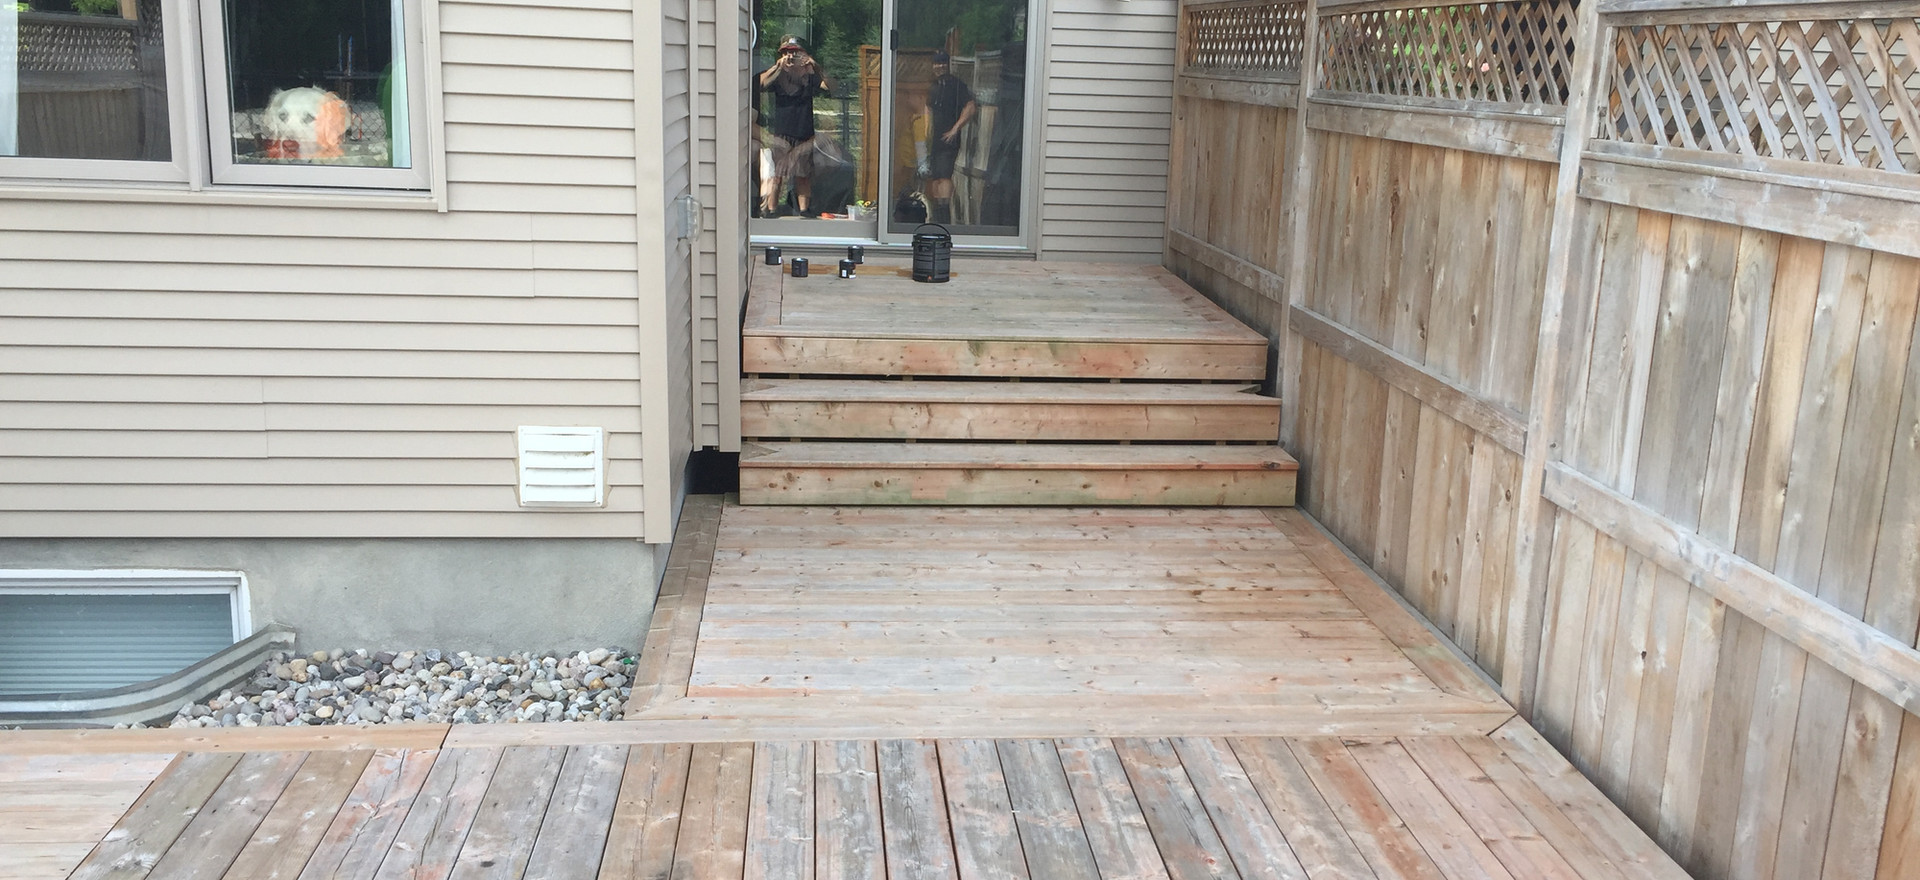 Sarah's Deck and Fence - Autumn Gold